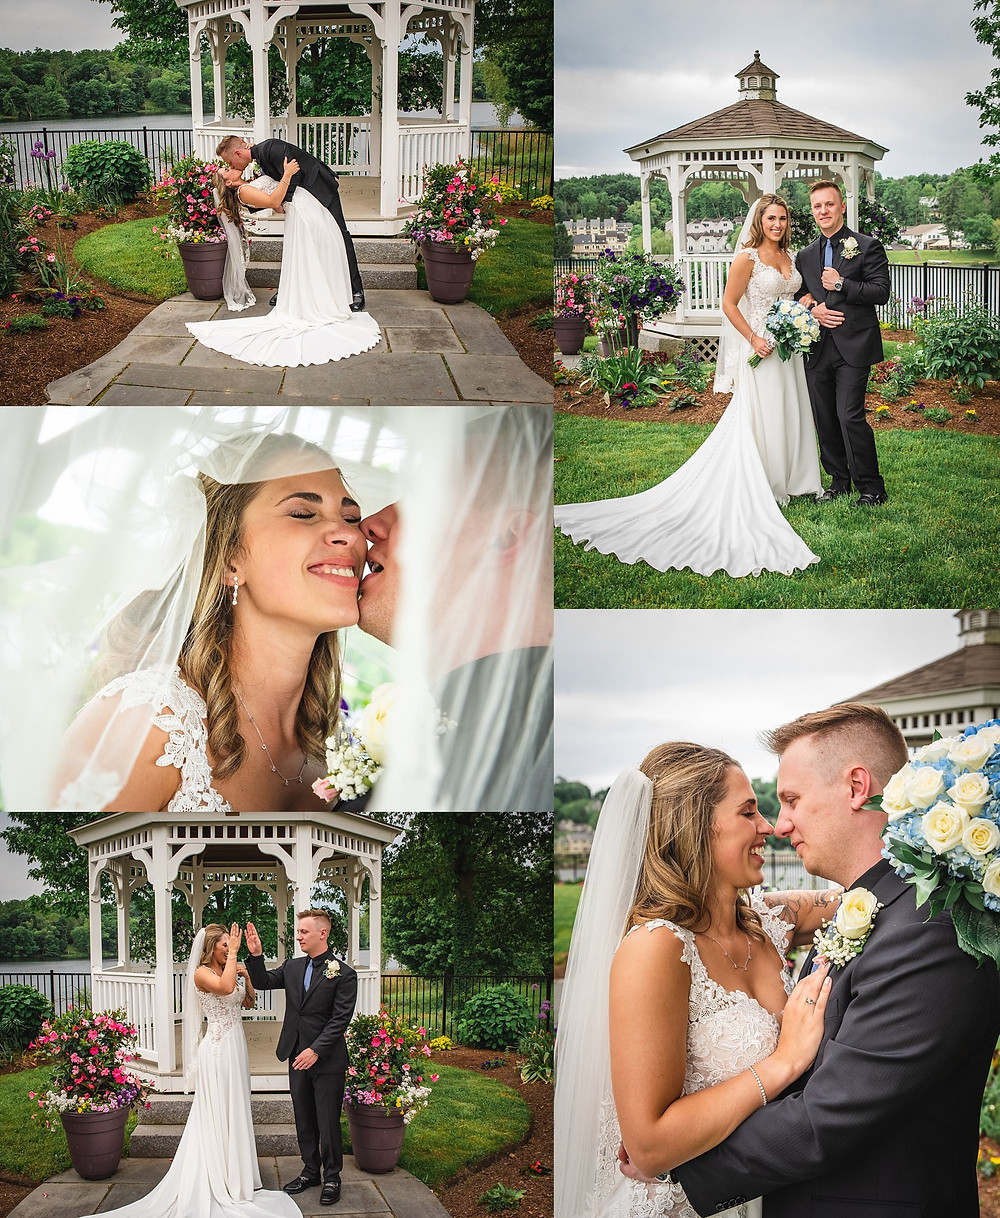 Bride and Groom Portraits at Anthony's Lake Club in Danbury CT